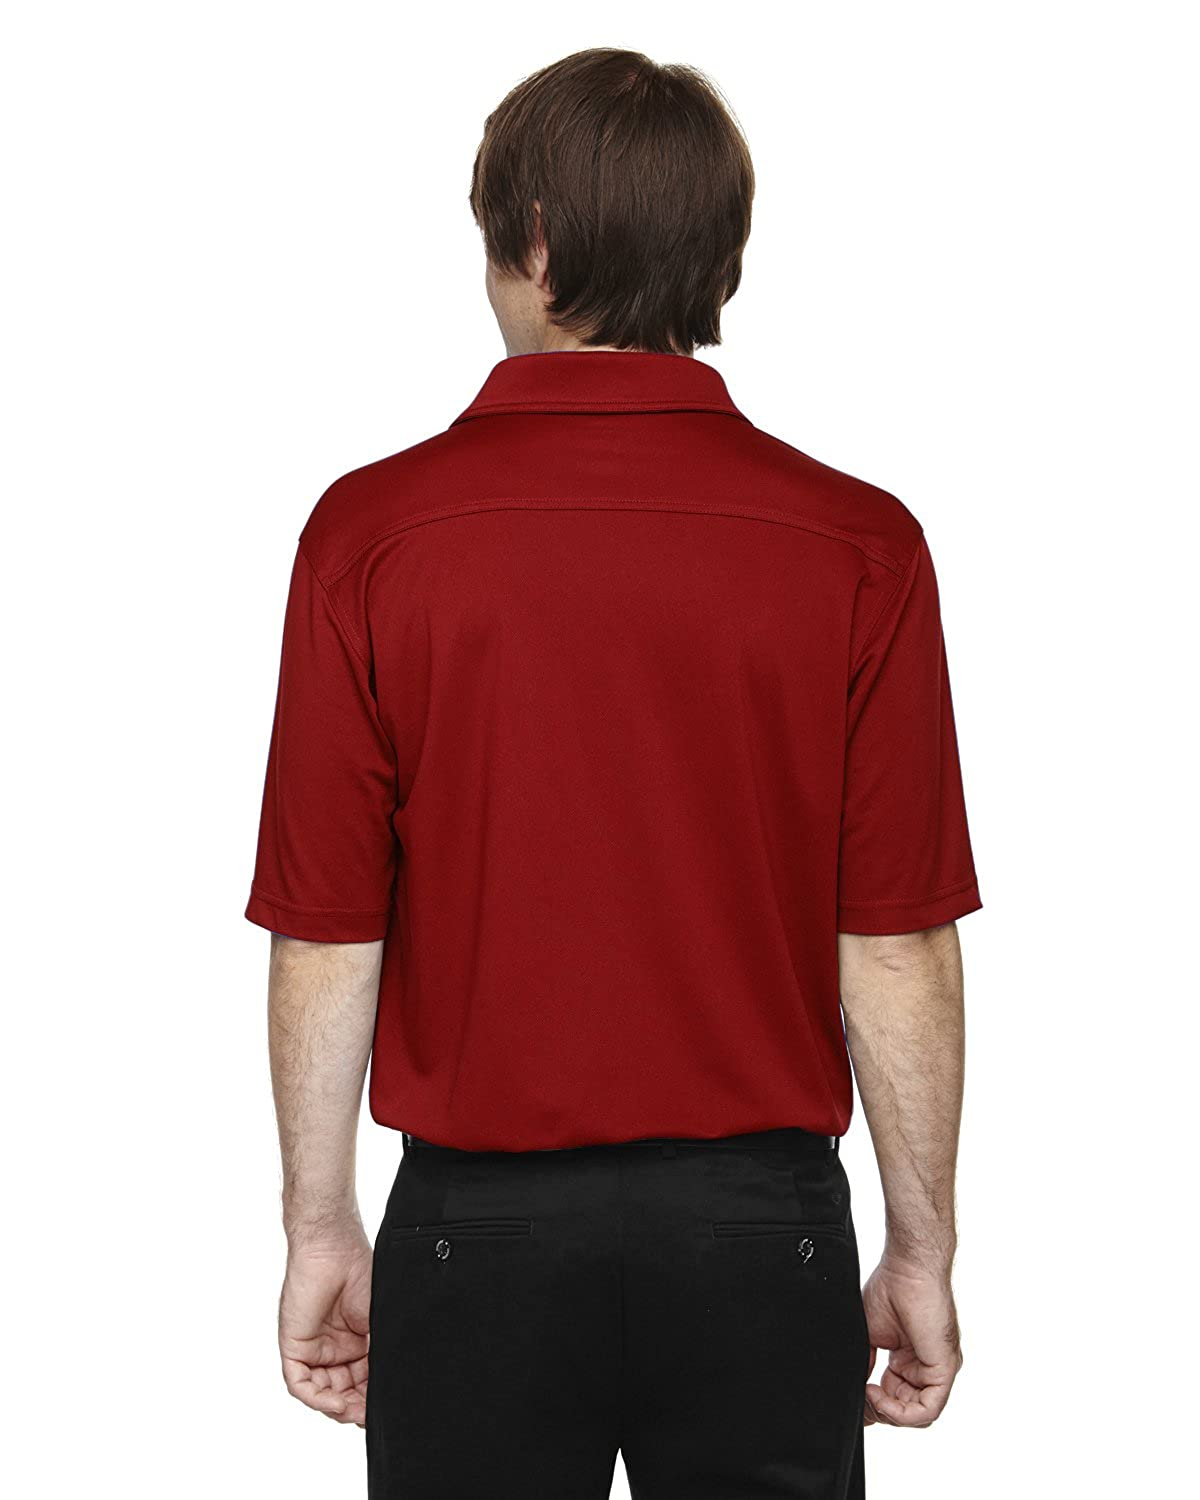 4XT Extreme Eperformance Mens Tall Shift Polo Shirt Classic Red 850